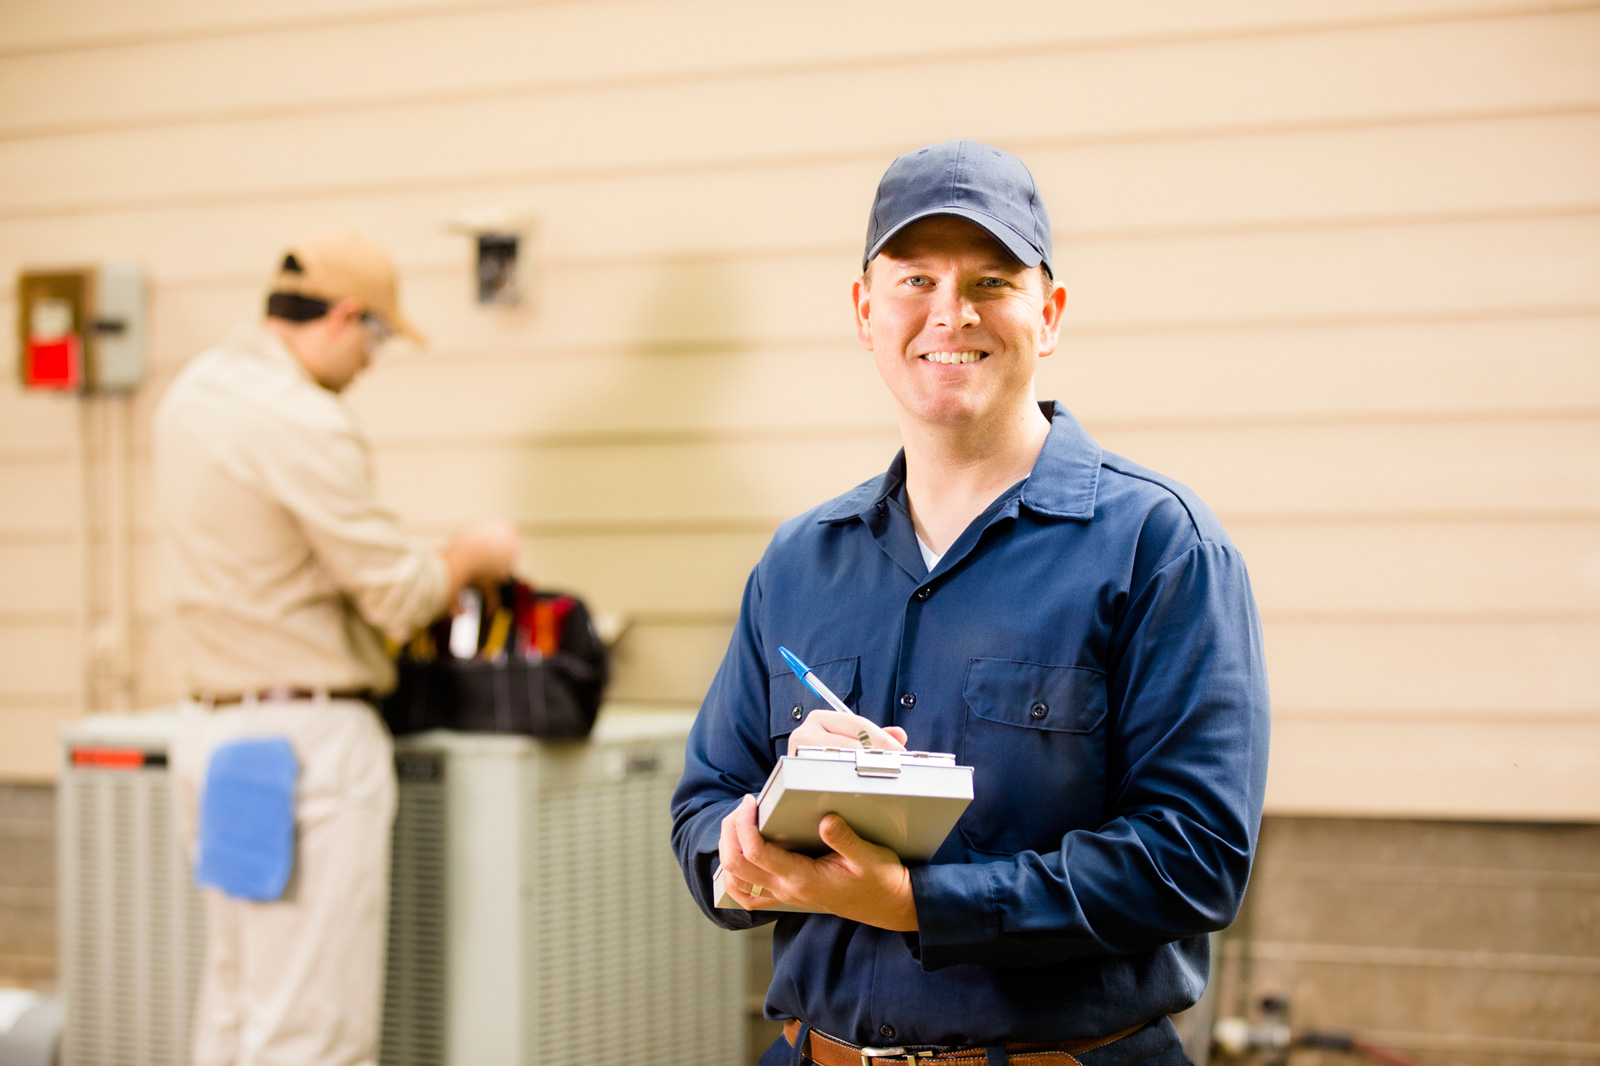 Should You Repair or Replace Your Air Conditioning System